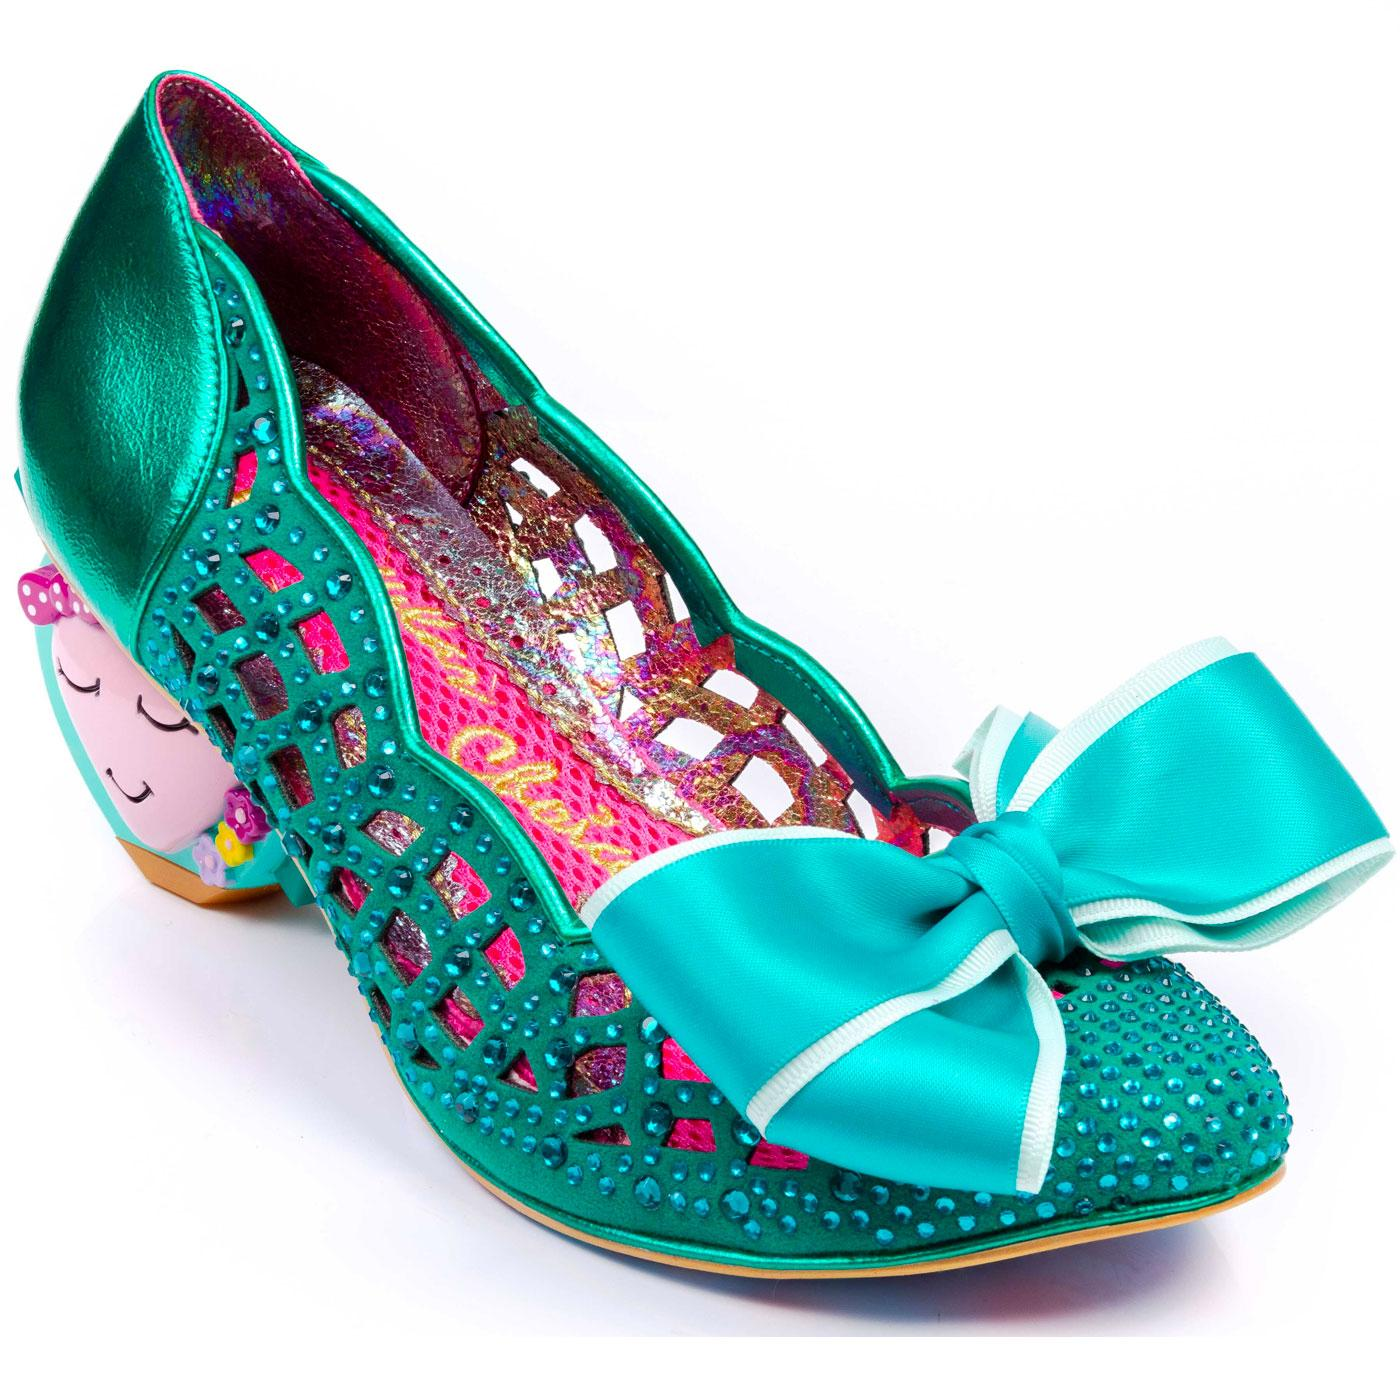 Liefde IRREGULAR CHOICE Cut Out Heart Heels Green